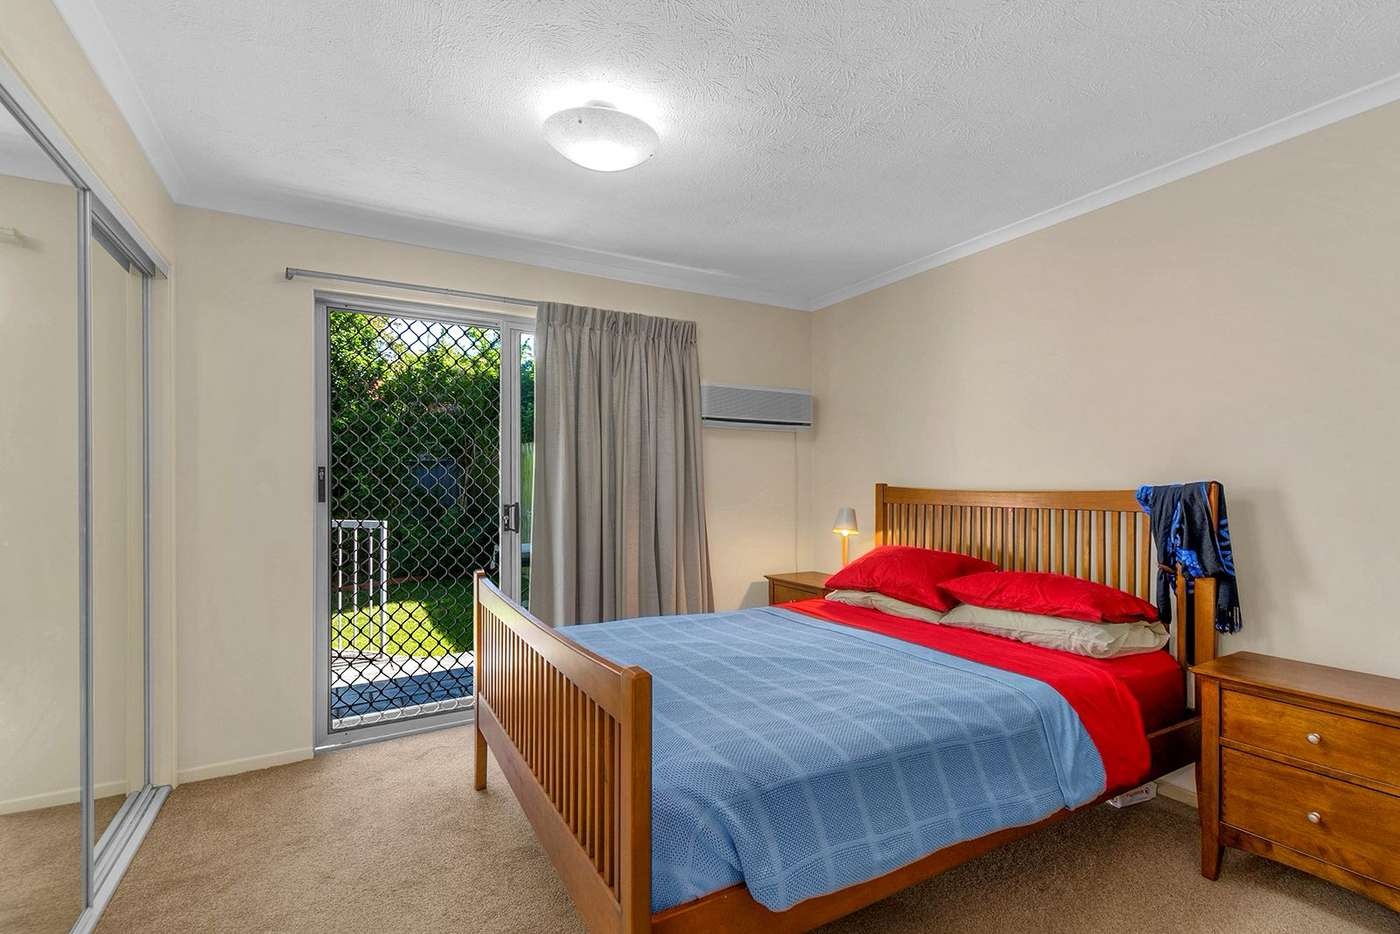 Sixth view of Homely unit listing, 3/15 Garfield Street, Nundah QLD 4012